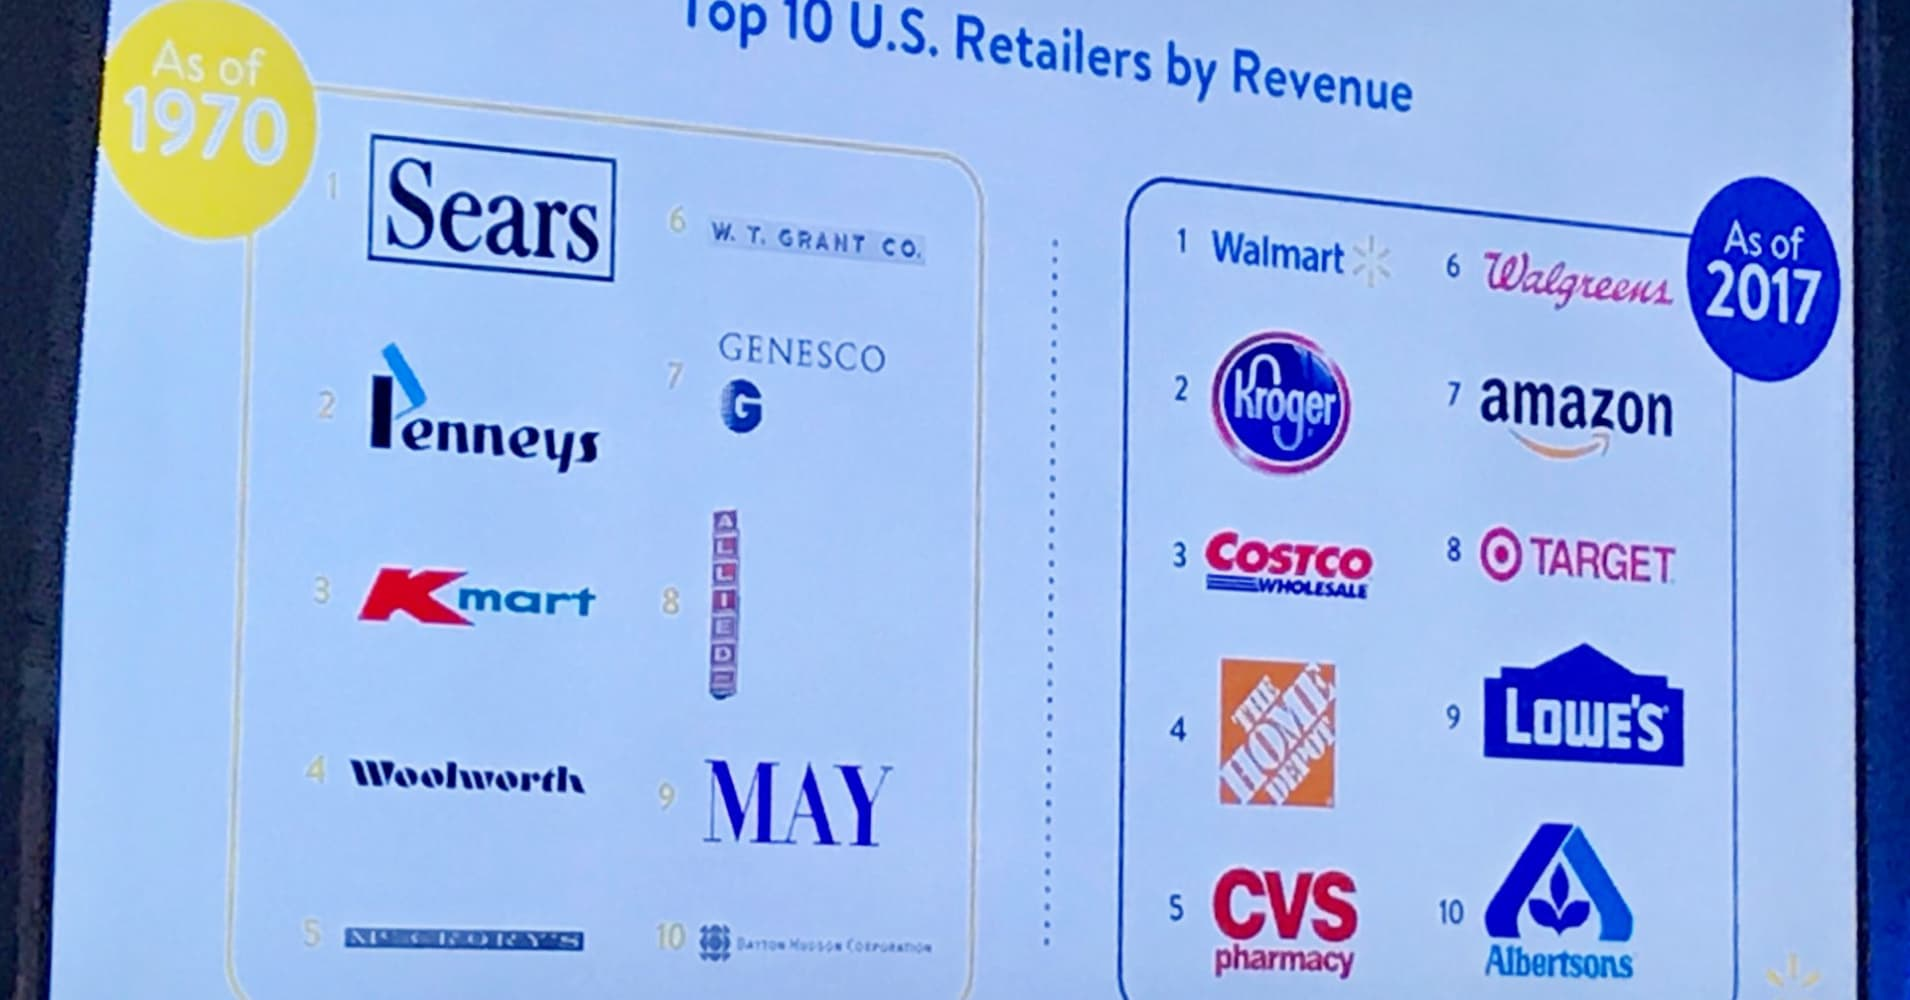 Top 10 retailers by revenue.